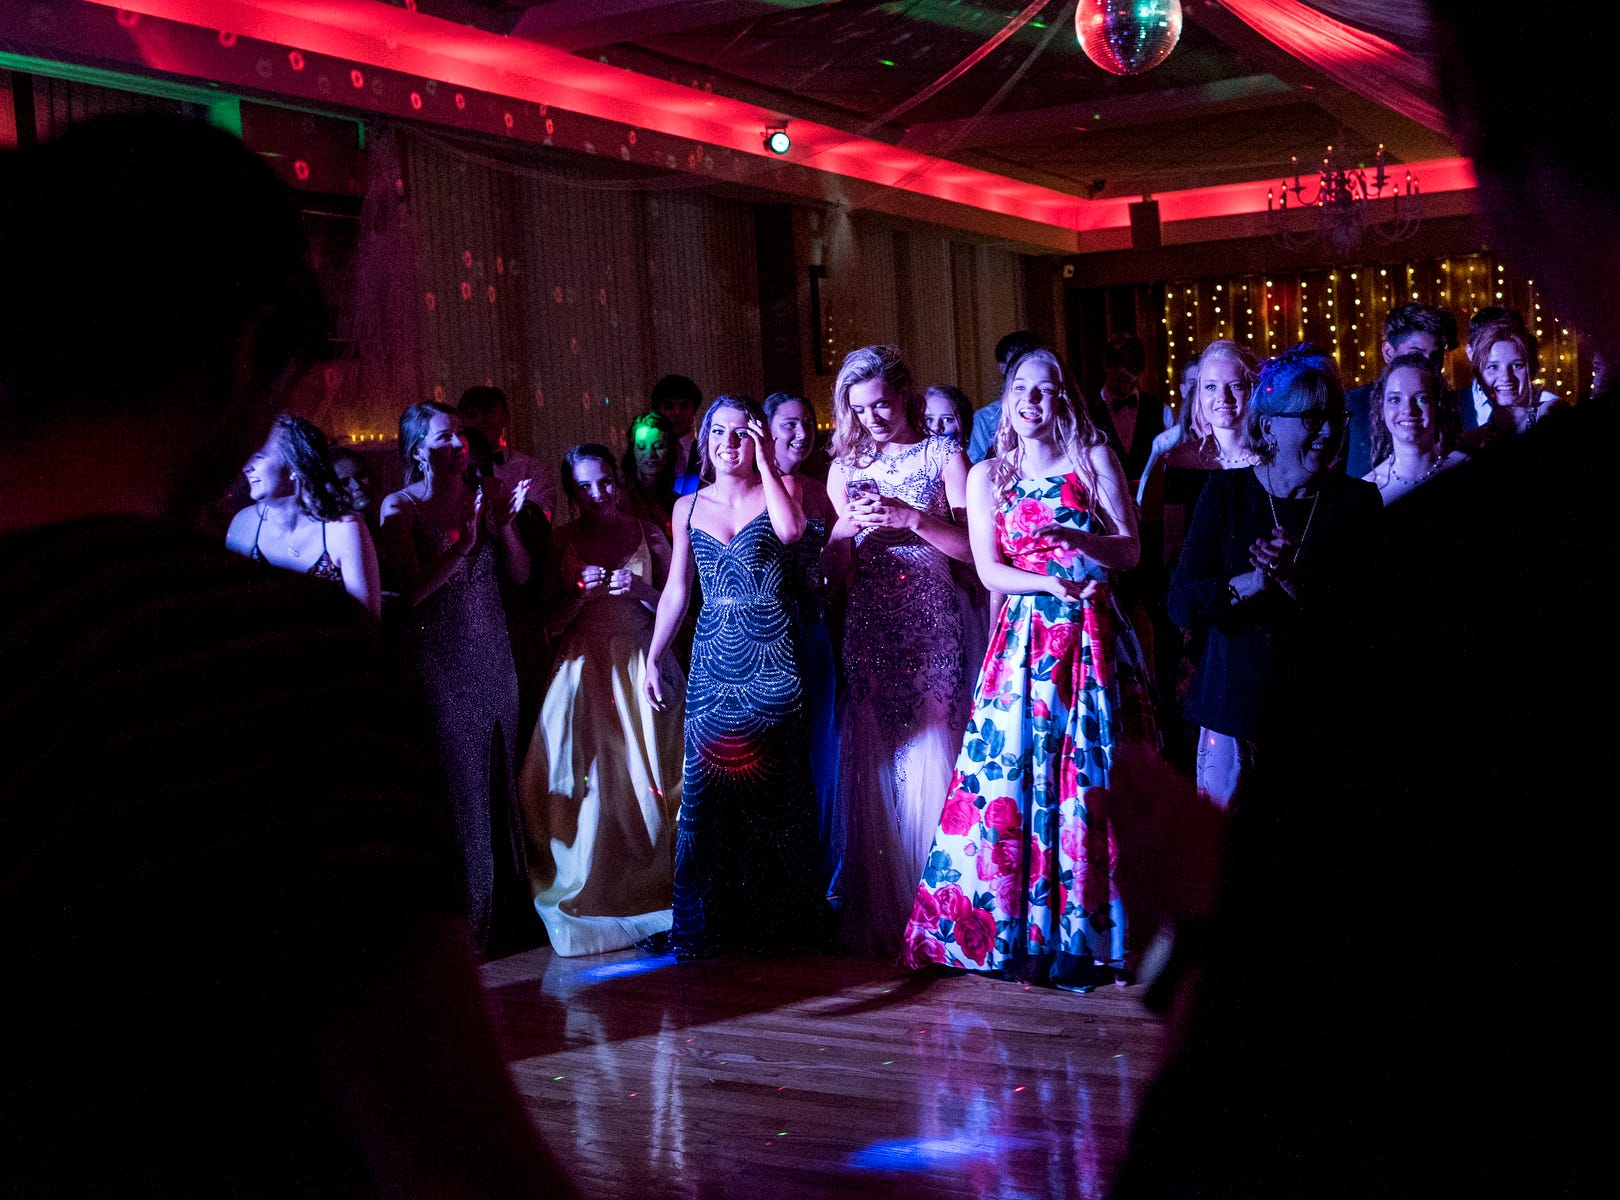 Evansville Day School students create a dance circle for someone to jump into during their prom held at the Hadi Shrine Banquet Hall in downtown Evansville, Ind., Saturday, April 27, 2019.